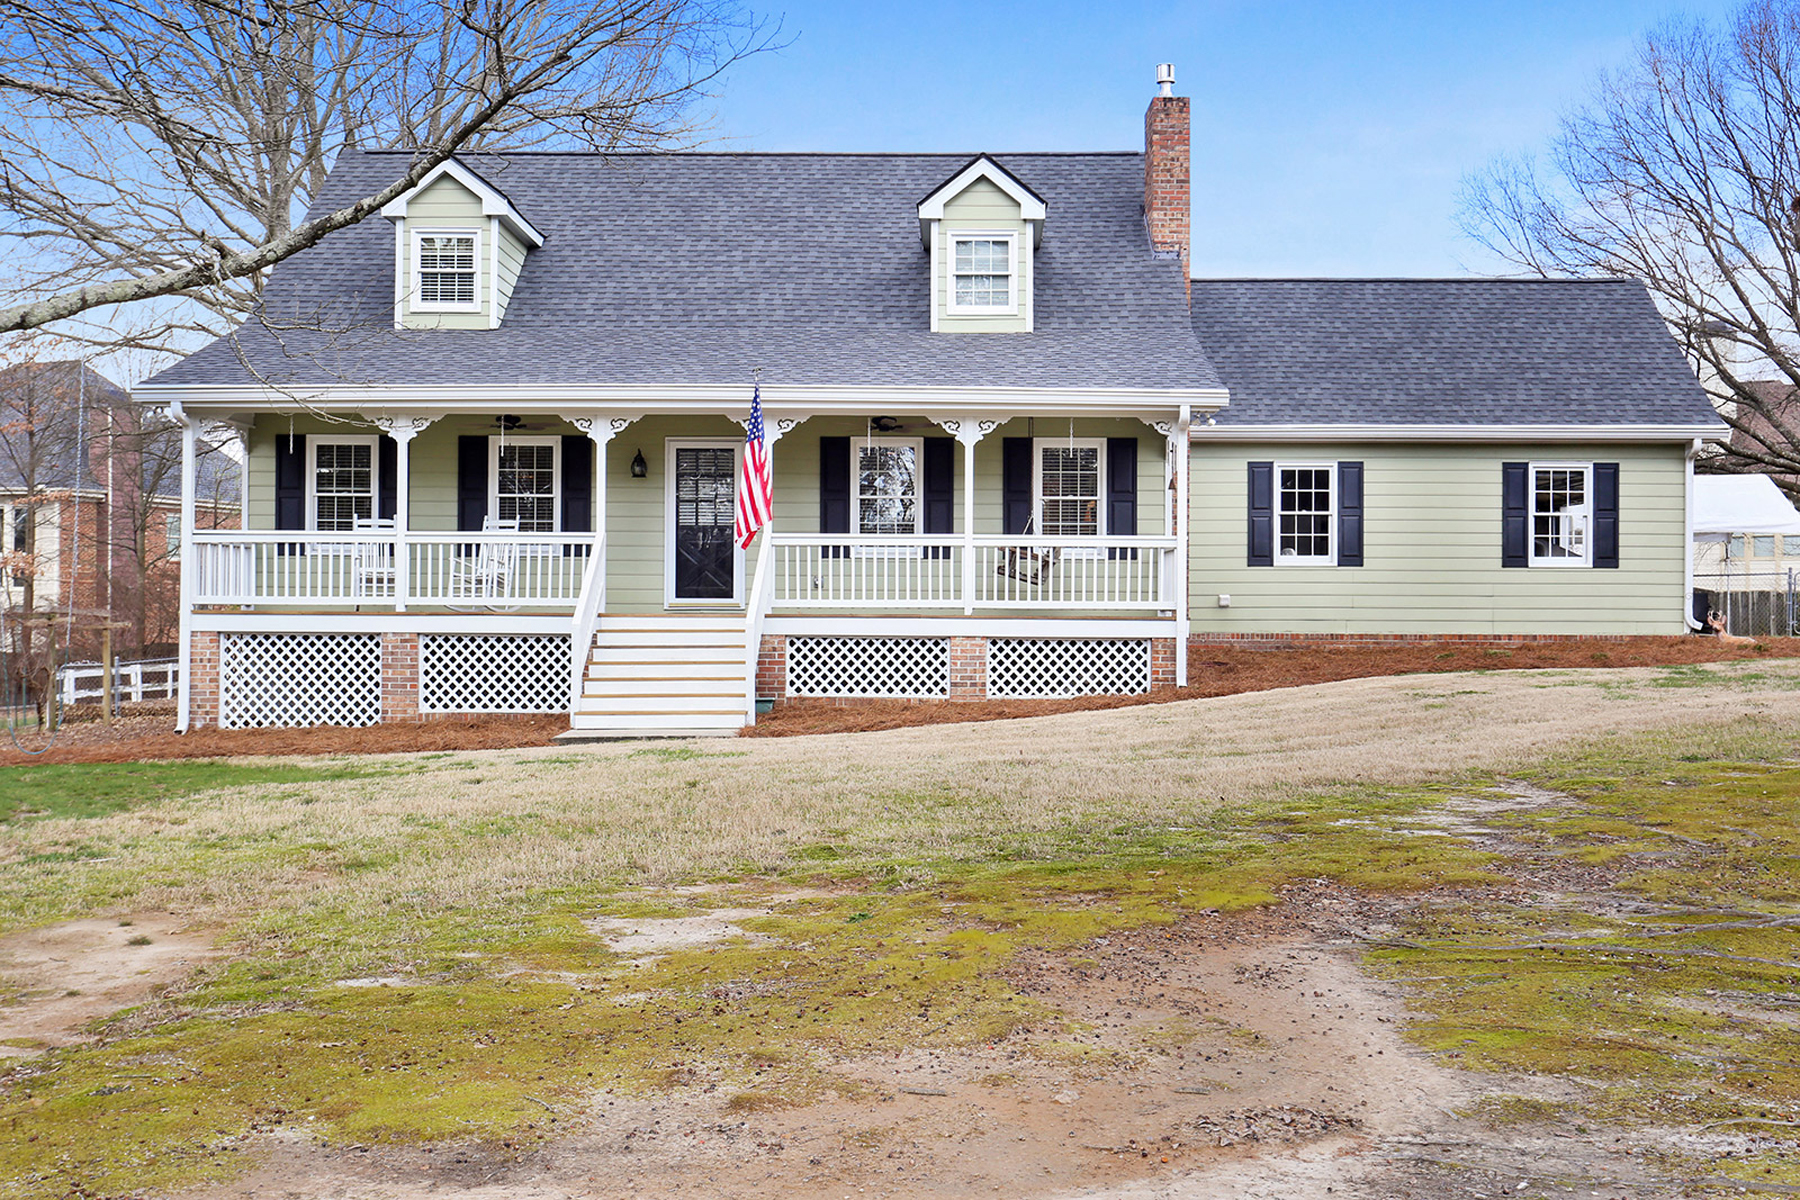 Single Family Homes for Active at Charming Cape Cod 905 Hillside Drive Grayson, Georgia 30017 United States